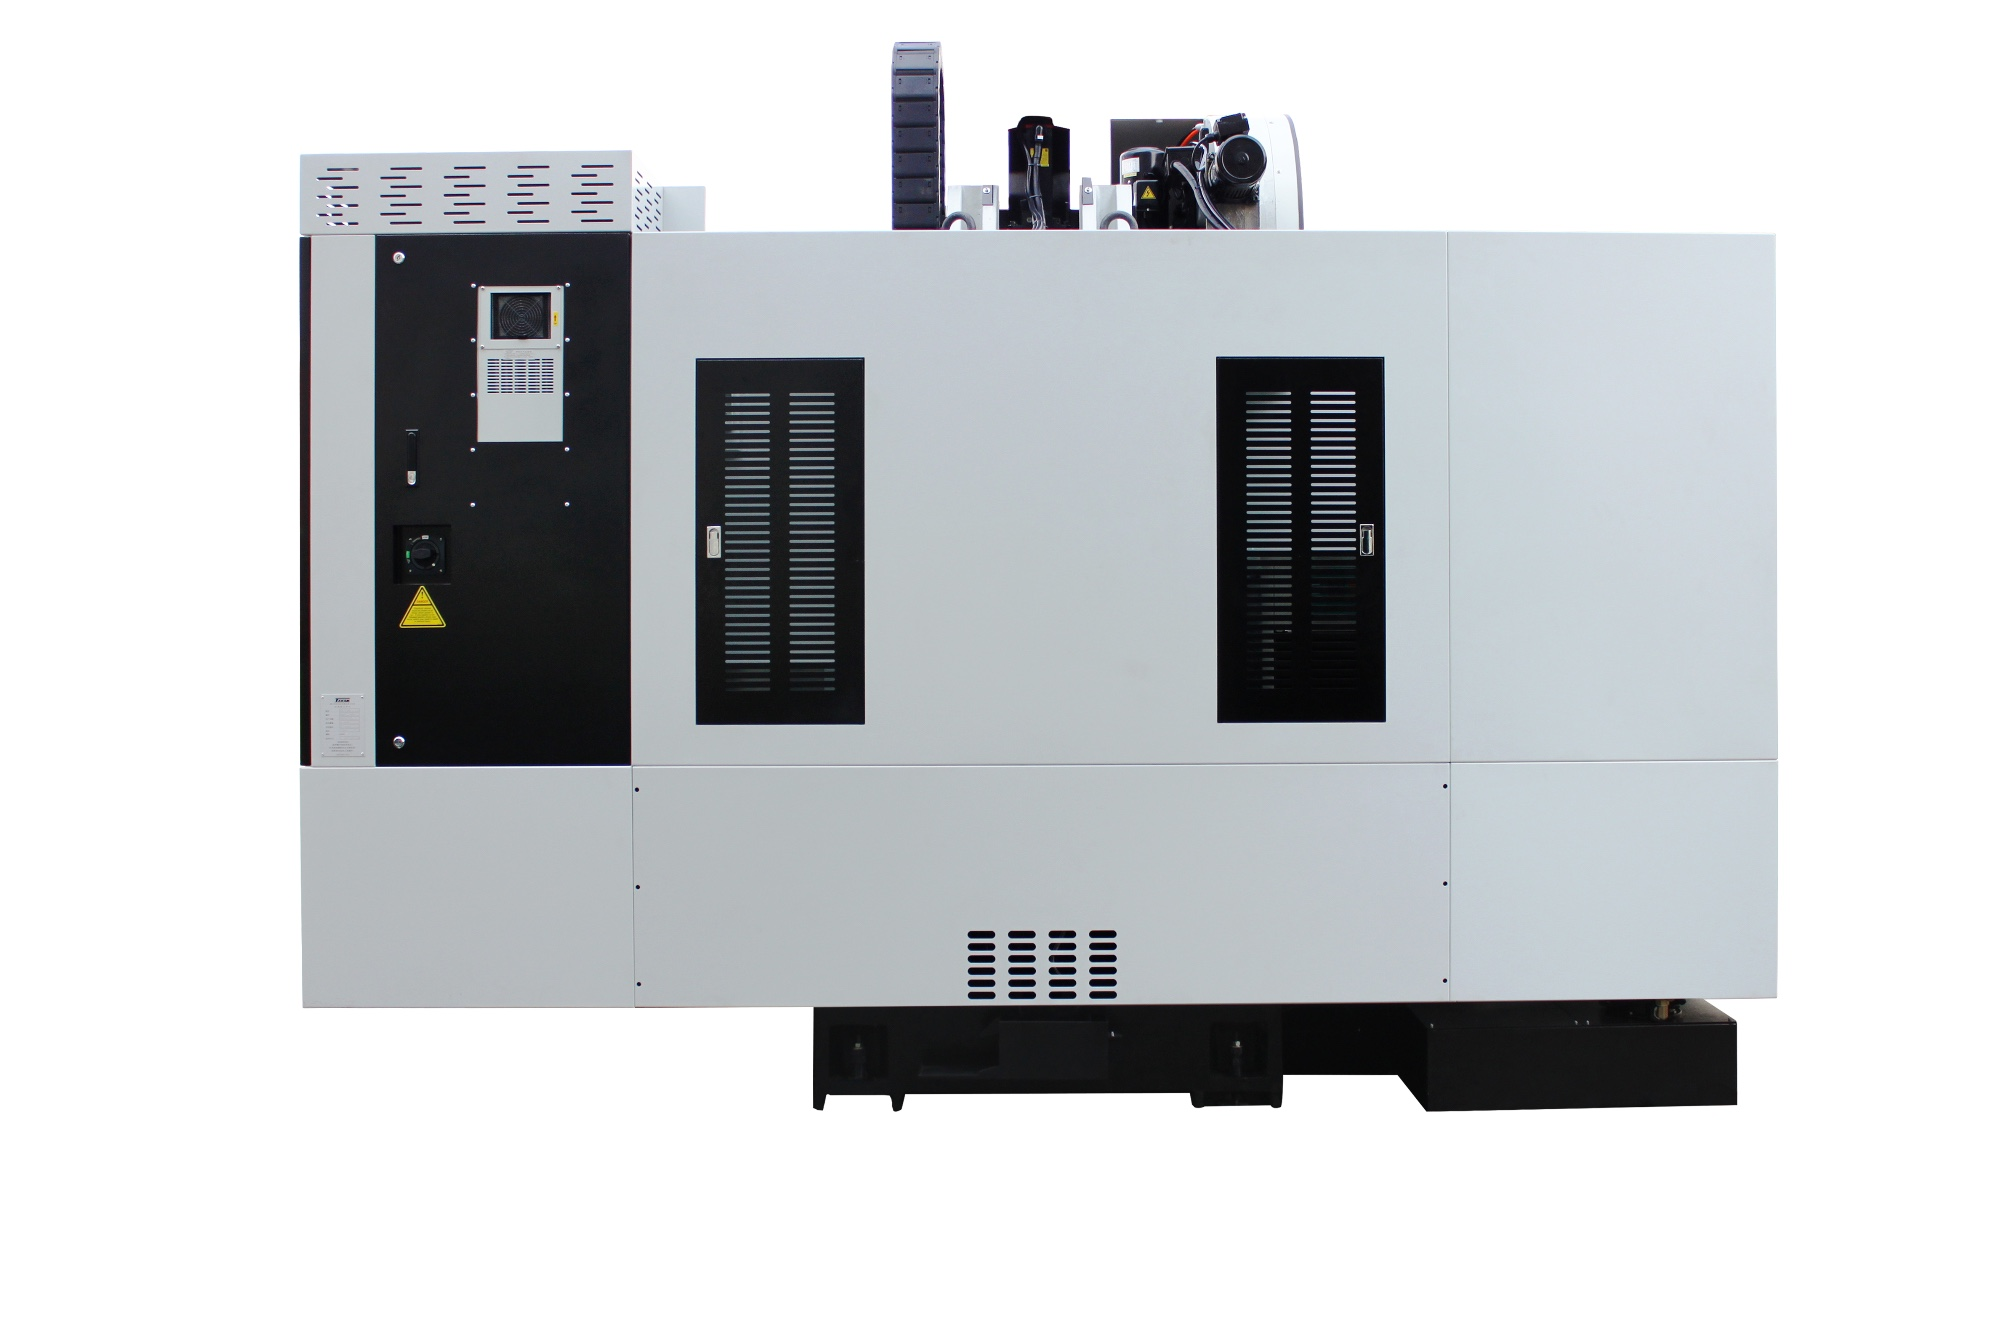 TE-1470 Heavy Duty Mold Making Machine With Gear Box Manufacturers, TE-1470 Heavy Duty Mold Making Machine With Gear Box Factory, Supply TE-1470 Heavy Duty Mold Making Machine With Gear Box